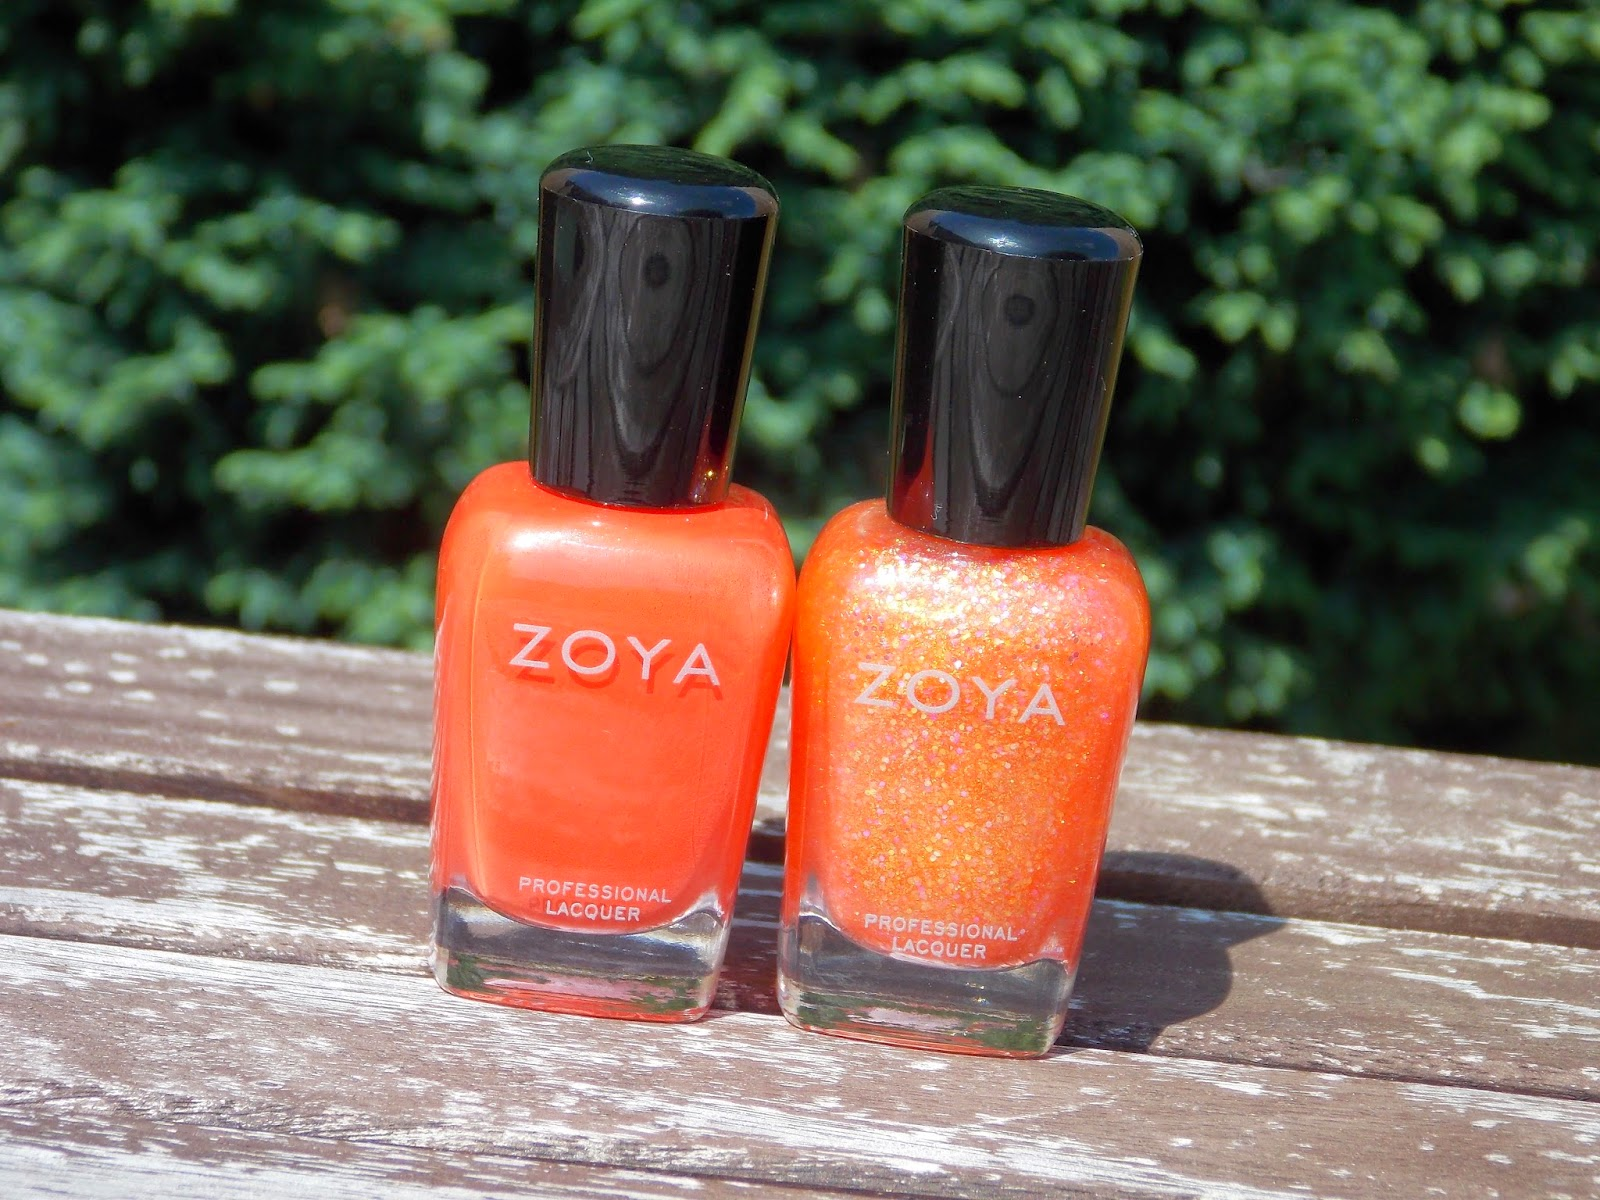 Zoya Nail Polish in Rocha and Zoya Nail Polish in Jesy